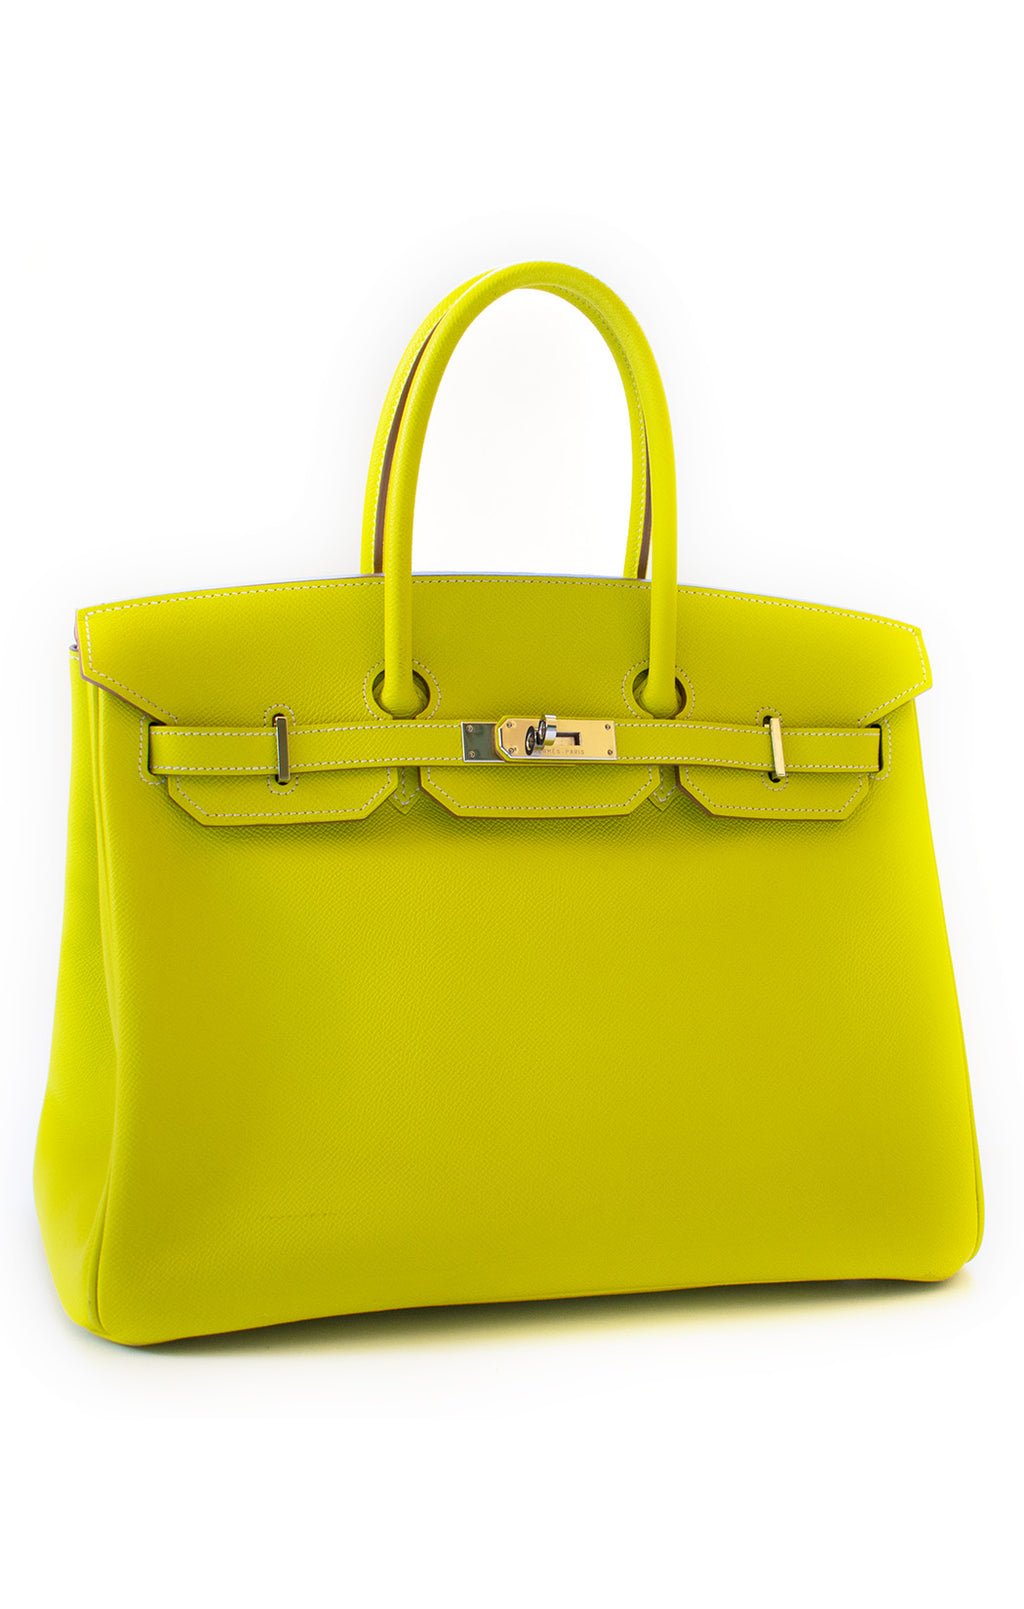 "Front view of HERMES Birkin 35 Handbag Size: Height 10"", Width 14"", Depth 7.5"", Handle Drop 4"""